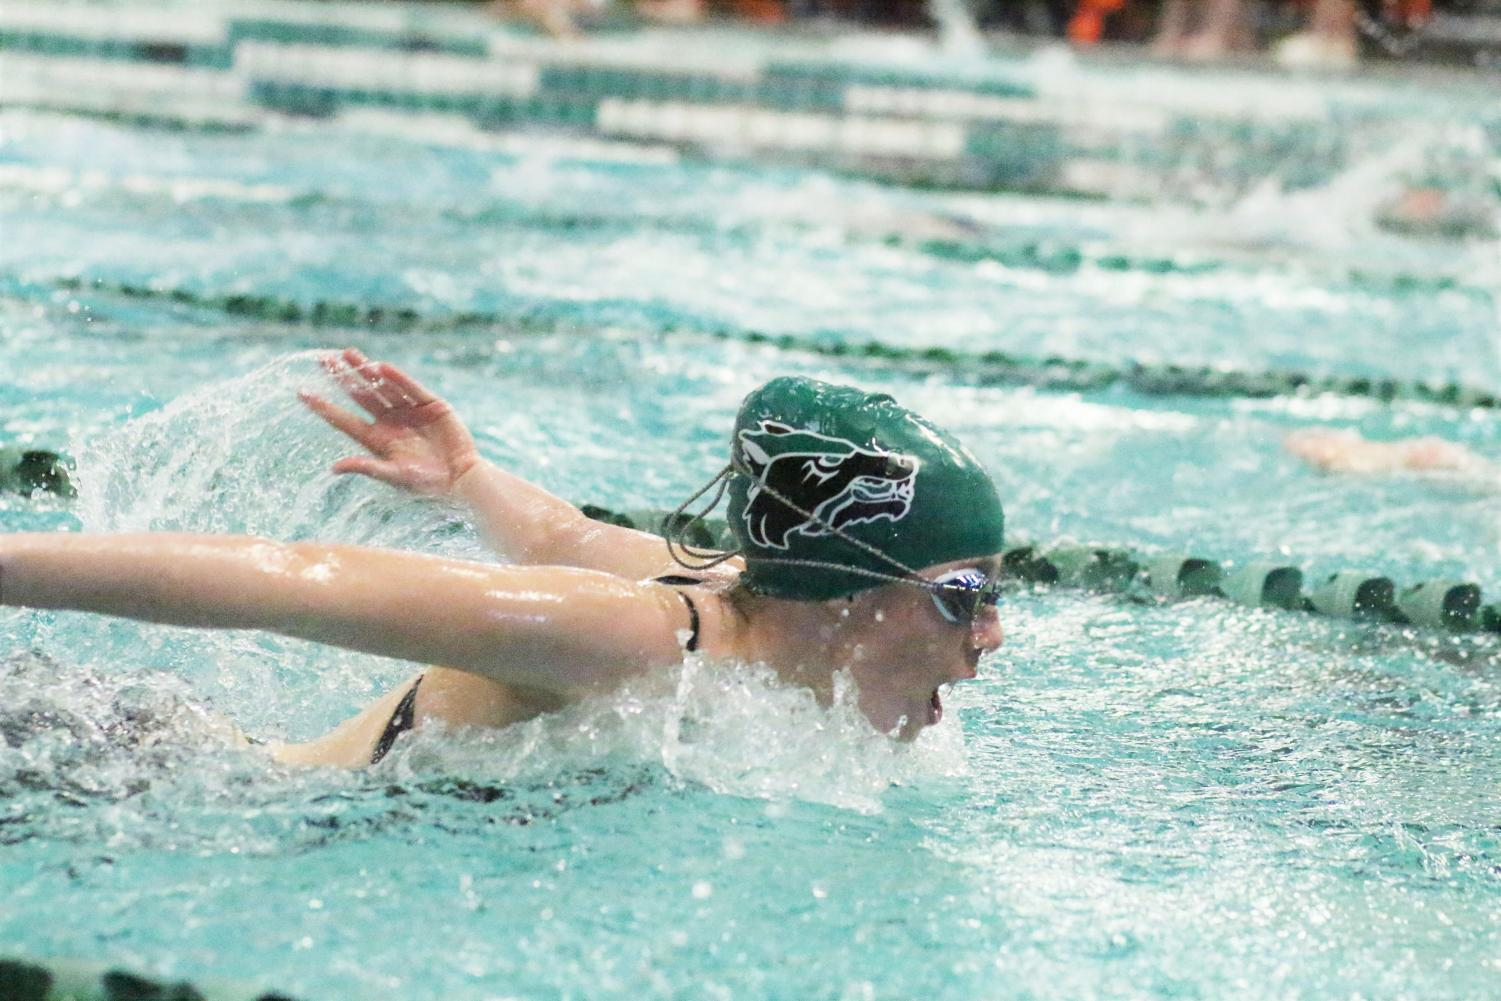 """Taking a deep breath, senior swim captain Ashley Poulsen participates in the 100 meter butterfly event at the district meet on Jan. 17. Both the swim and dive teams ranked first in the district, and are moving onto regionals. """"It is exciting knowing we won districts because we are one step closer to state,"""" Poulsen said. """"We are anxious about how regionals will go because we have been very close in years past. Last year the boys team lost first place and got second by half a point, so it will be an exciting meet coming up."""""""